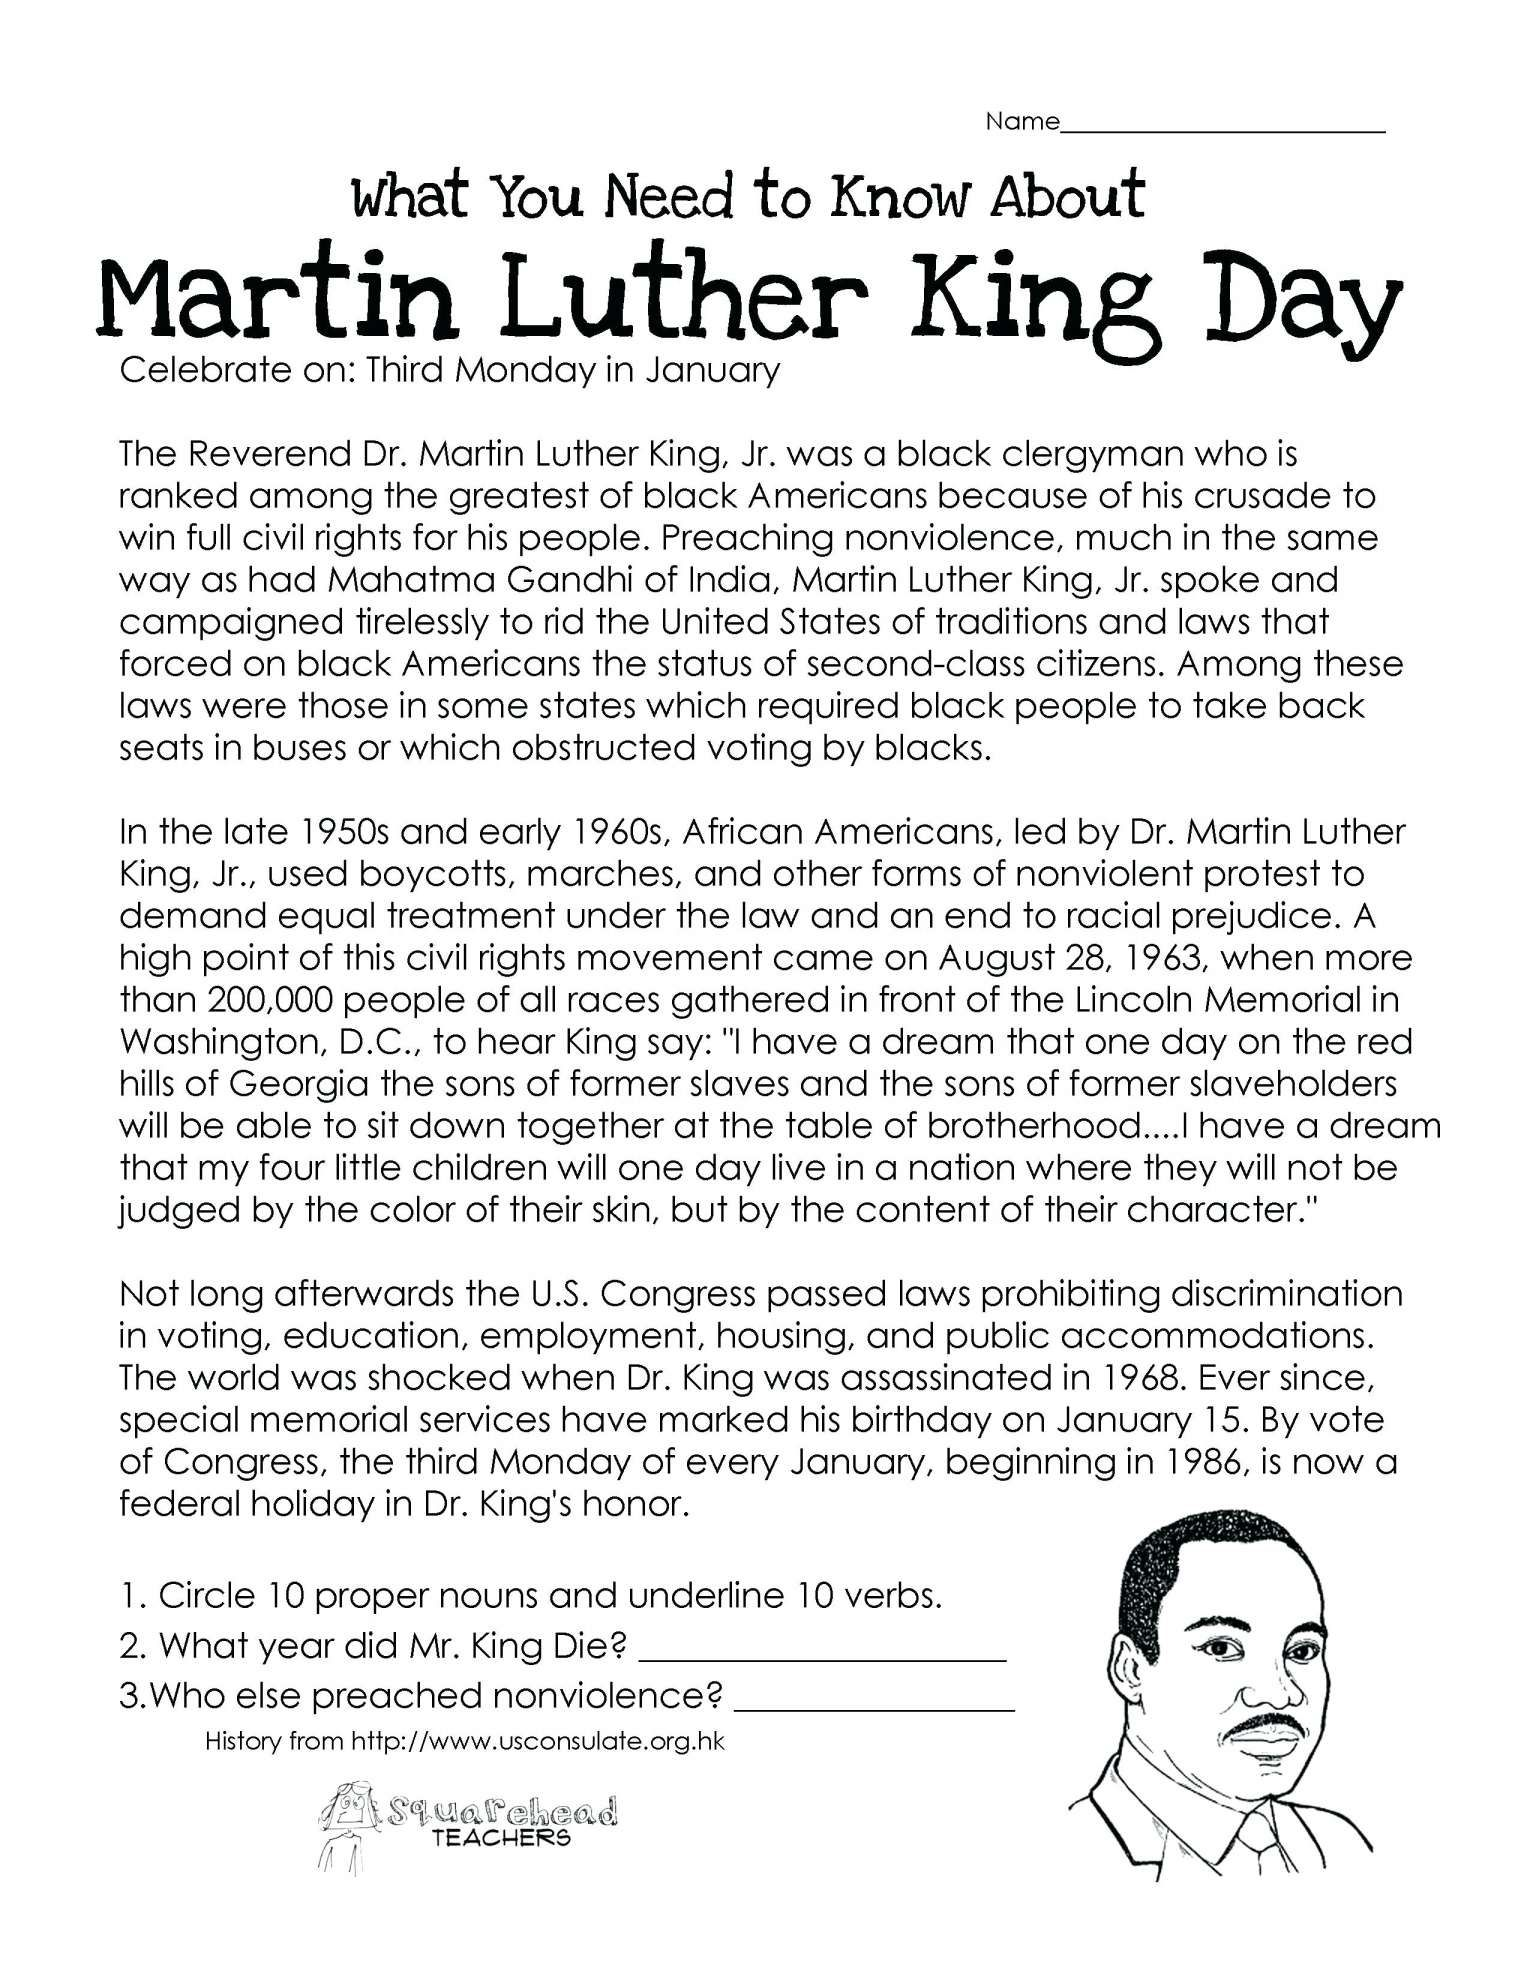 7 Reading Comprehension Worksheets 5th Grade Multiple Choice Gr In 2020 Martin Luther King Activities Martin Luther King Worksheets Martin Luther King Jr Activities